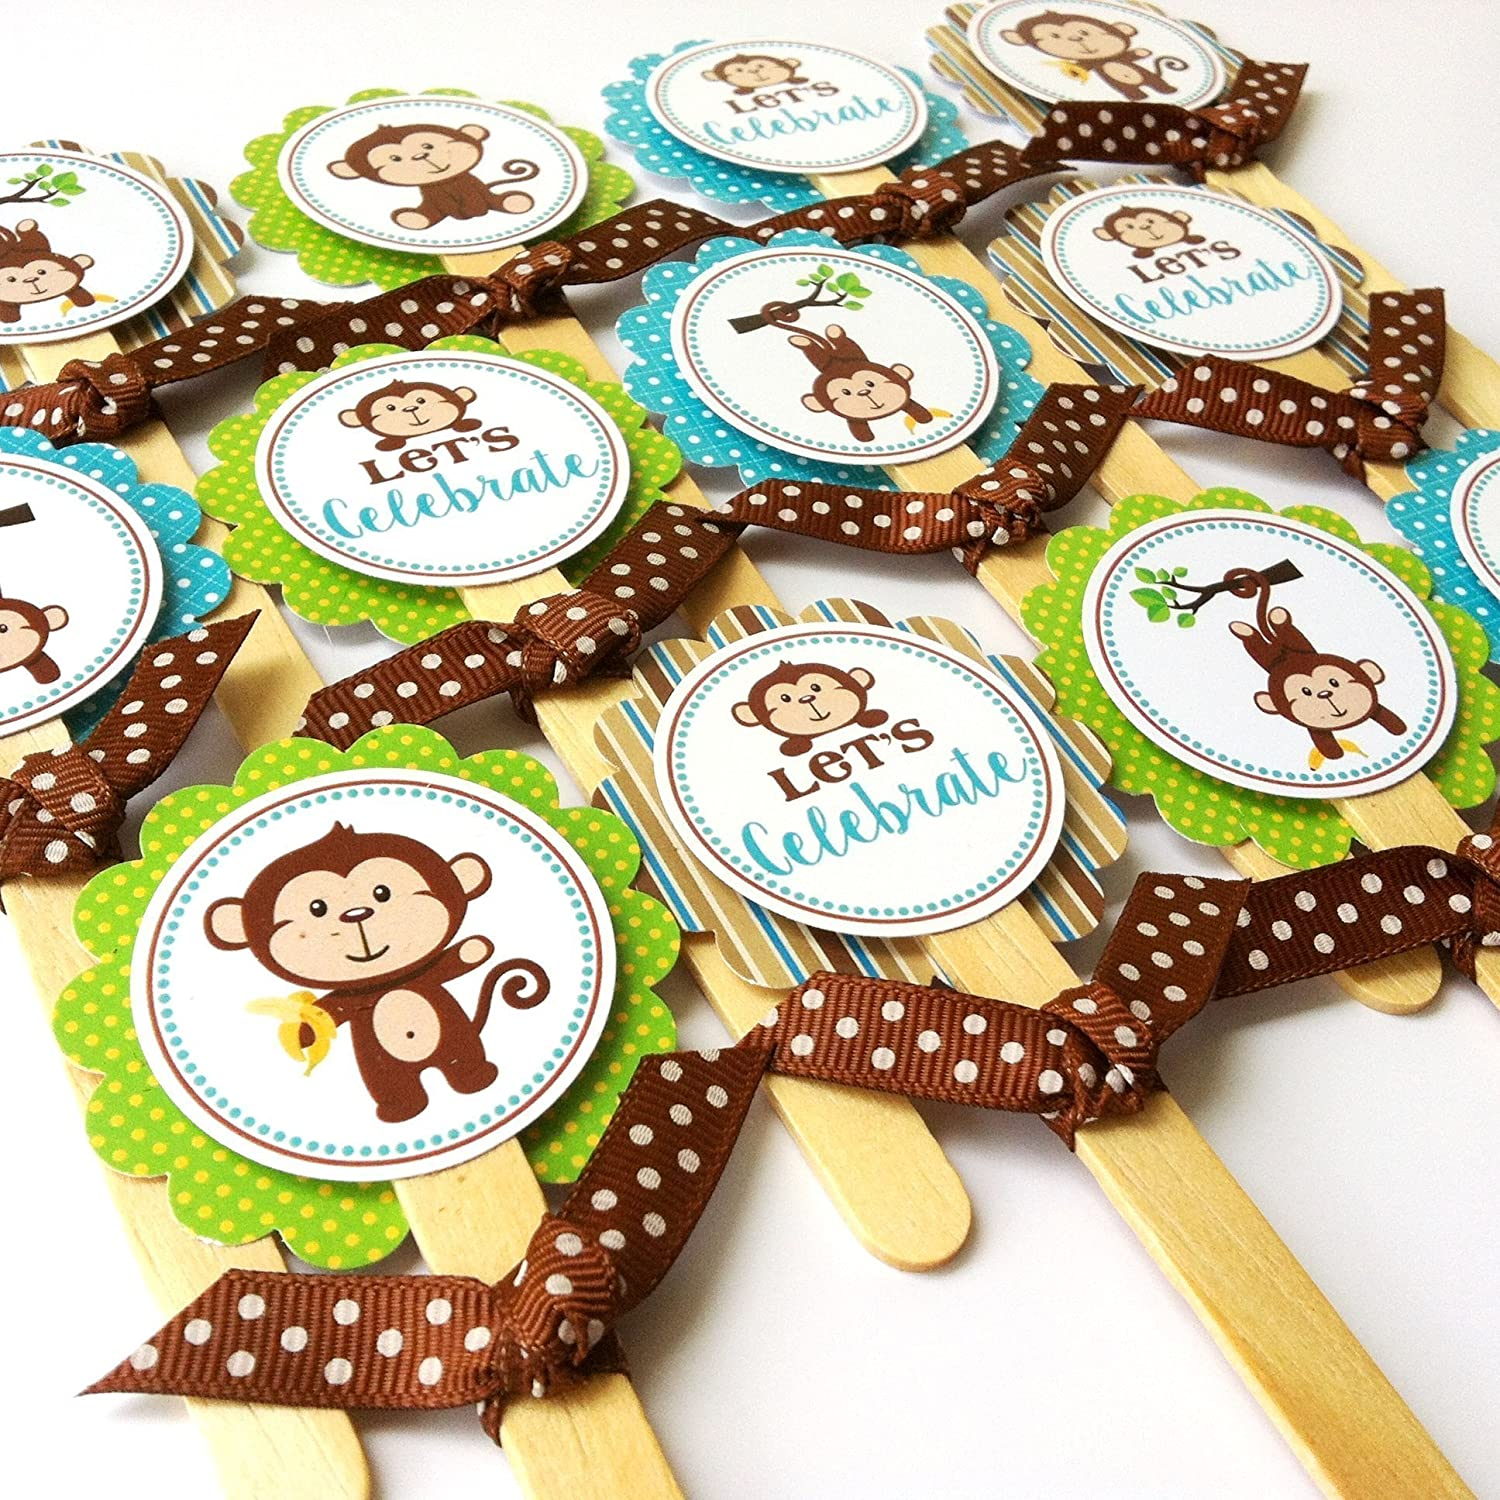 Monkey Cupcake Toppers - Let's Celebrate Baby Shower Birthday Party Cake Toppers - Set of 12